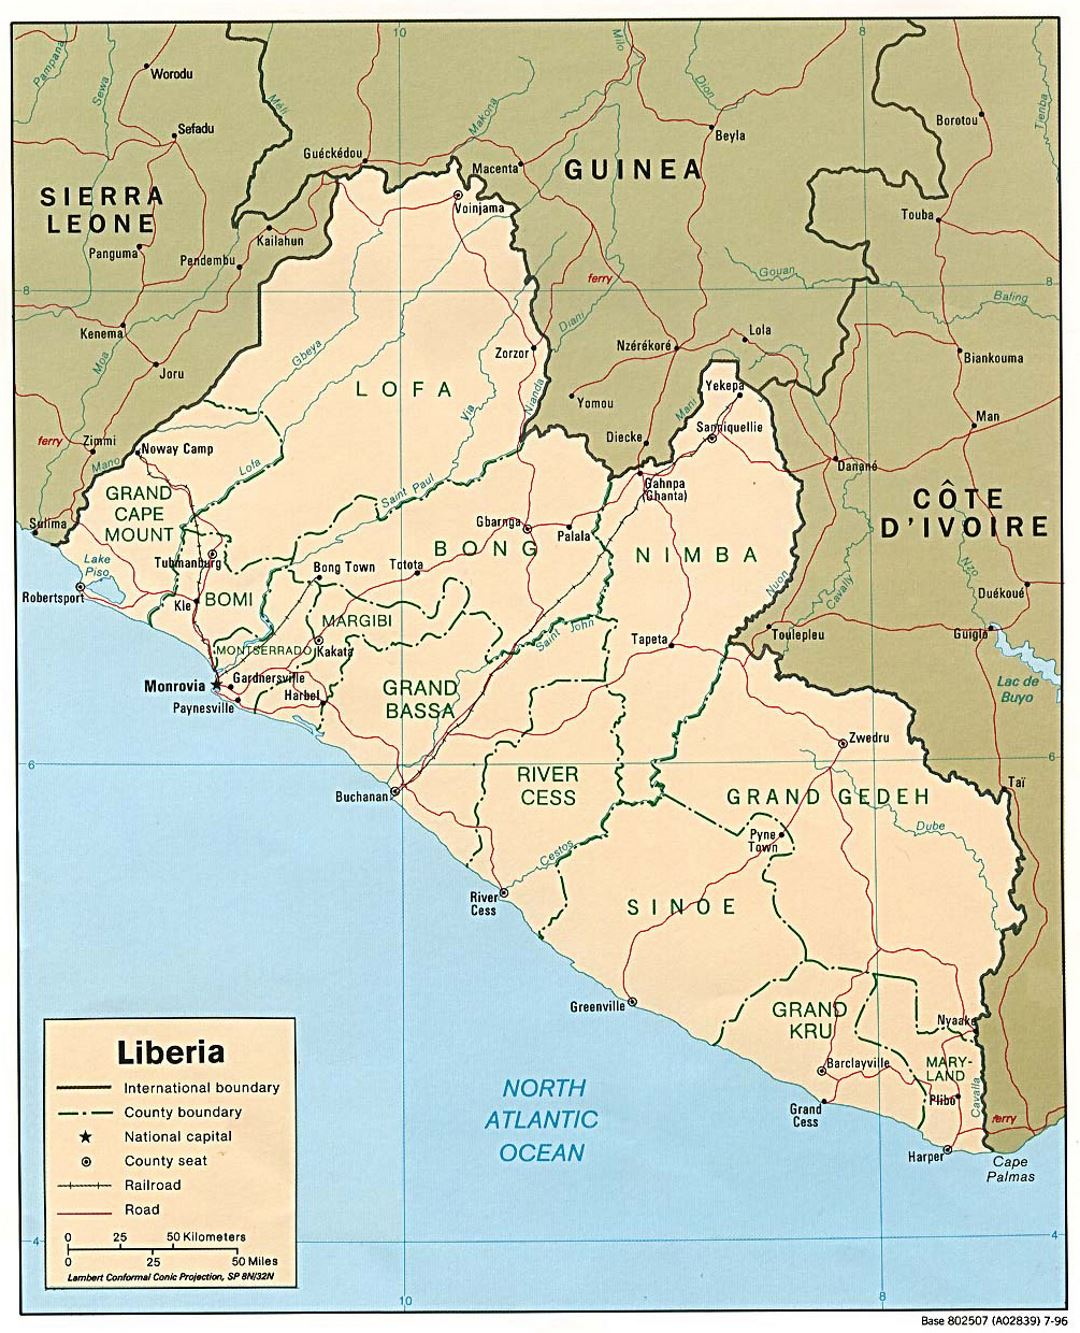 Detailed political and administrative map of Liberia with roads, railroads and major cities - 1996